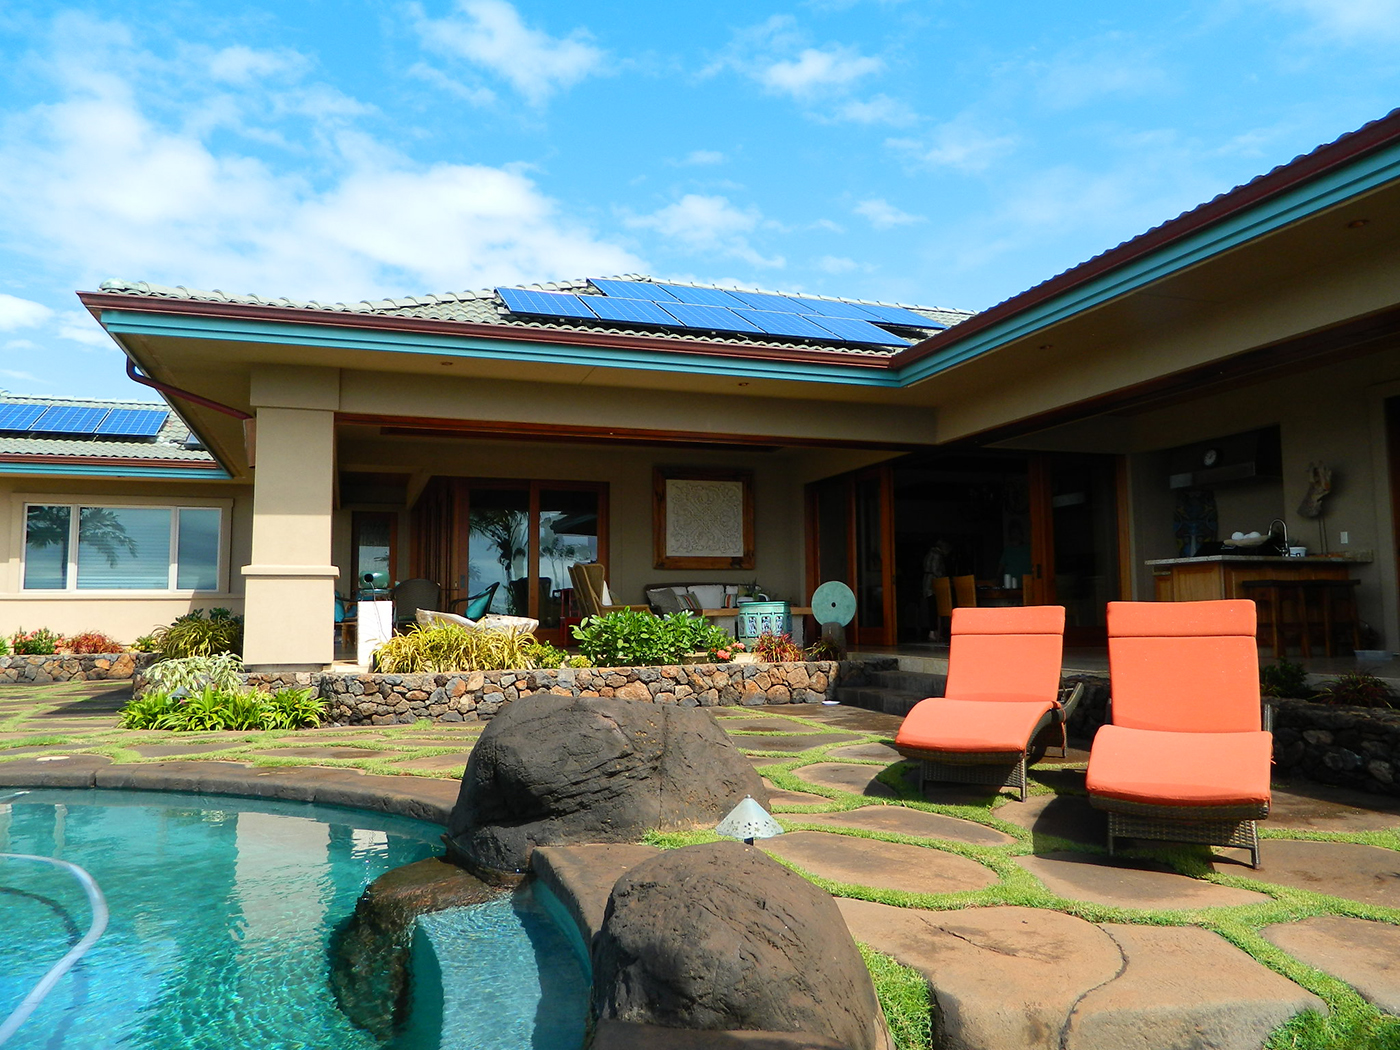 4 MAUI Residence - Lanai and custom pocket sliding wood doors.JPG